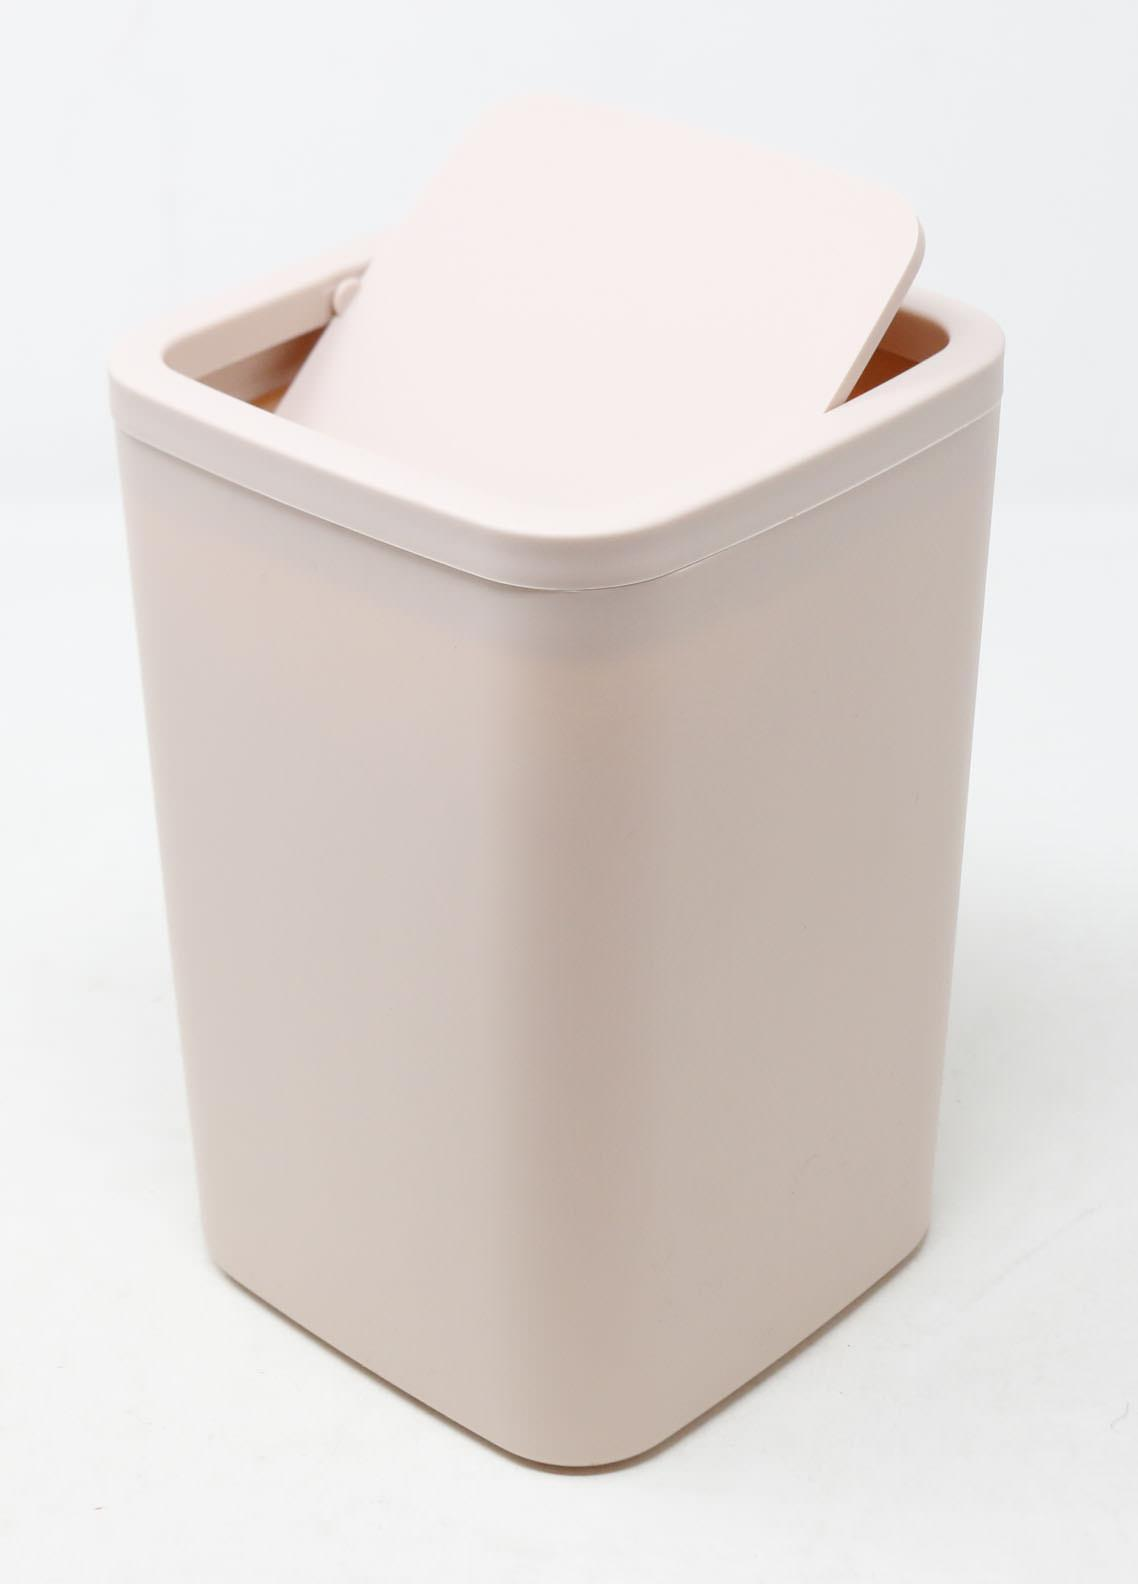 Mumuso SWING TOP TRASH CAN 475